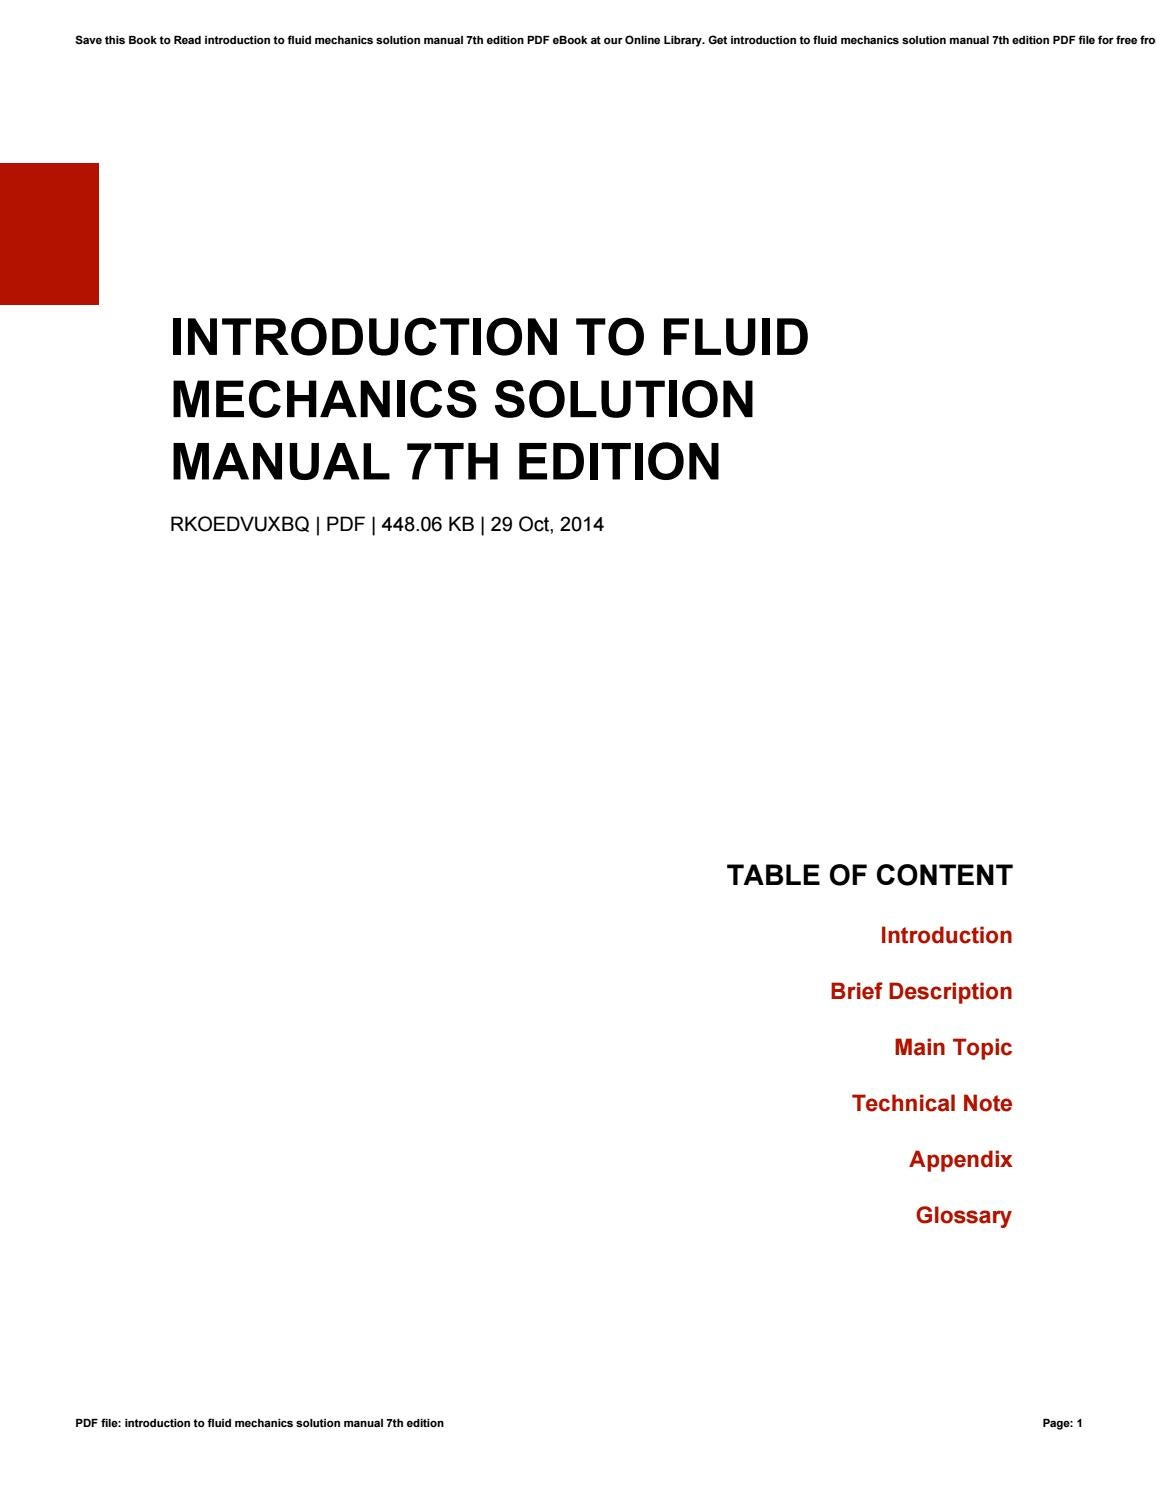 Introduction to fluid mechanics solution manual 7th edition by Cecile -  issuu